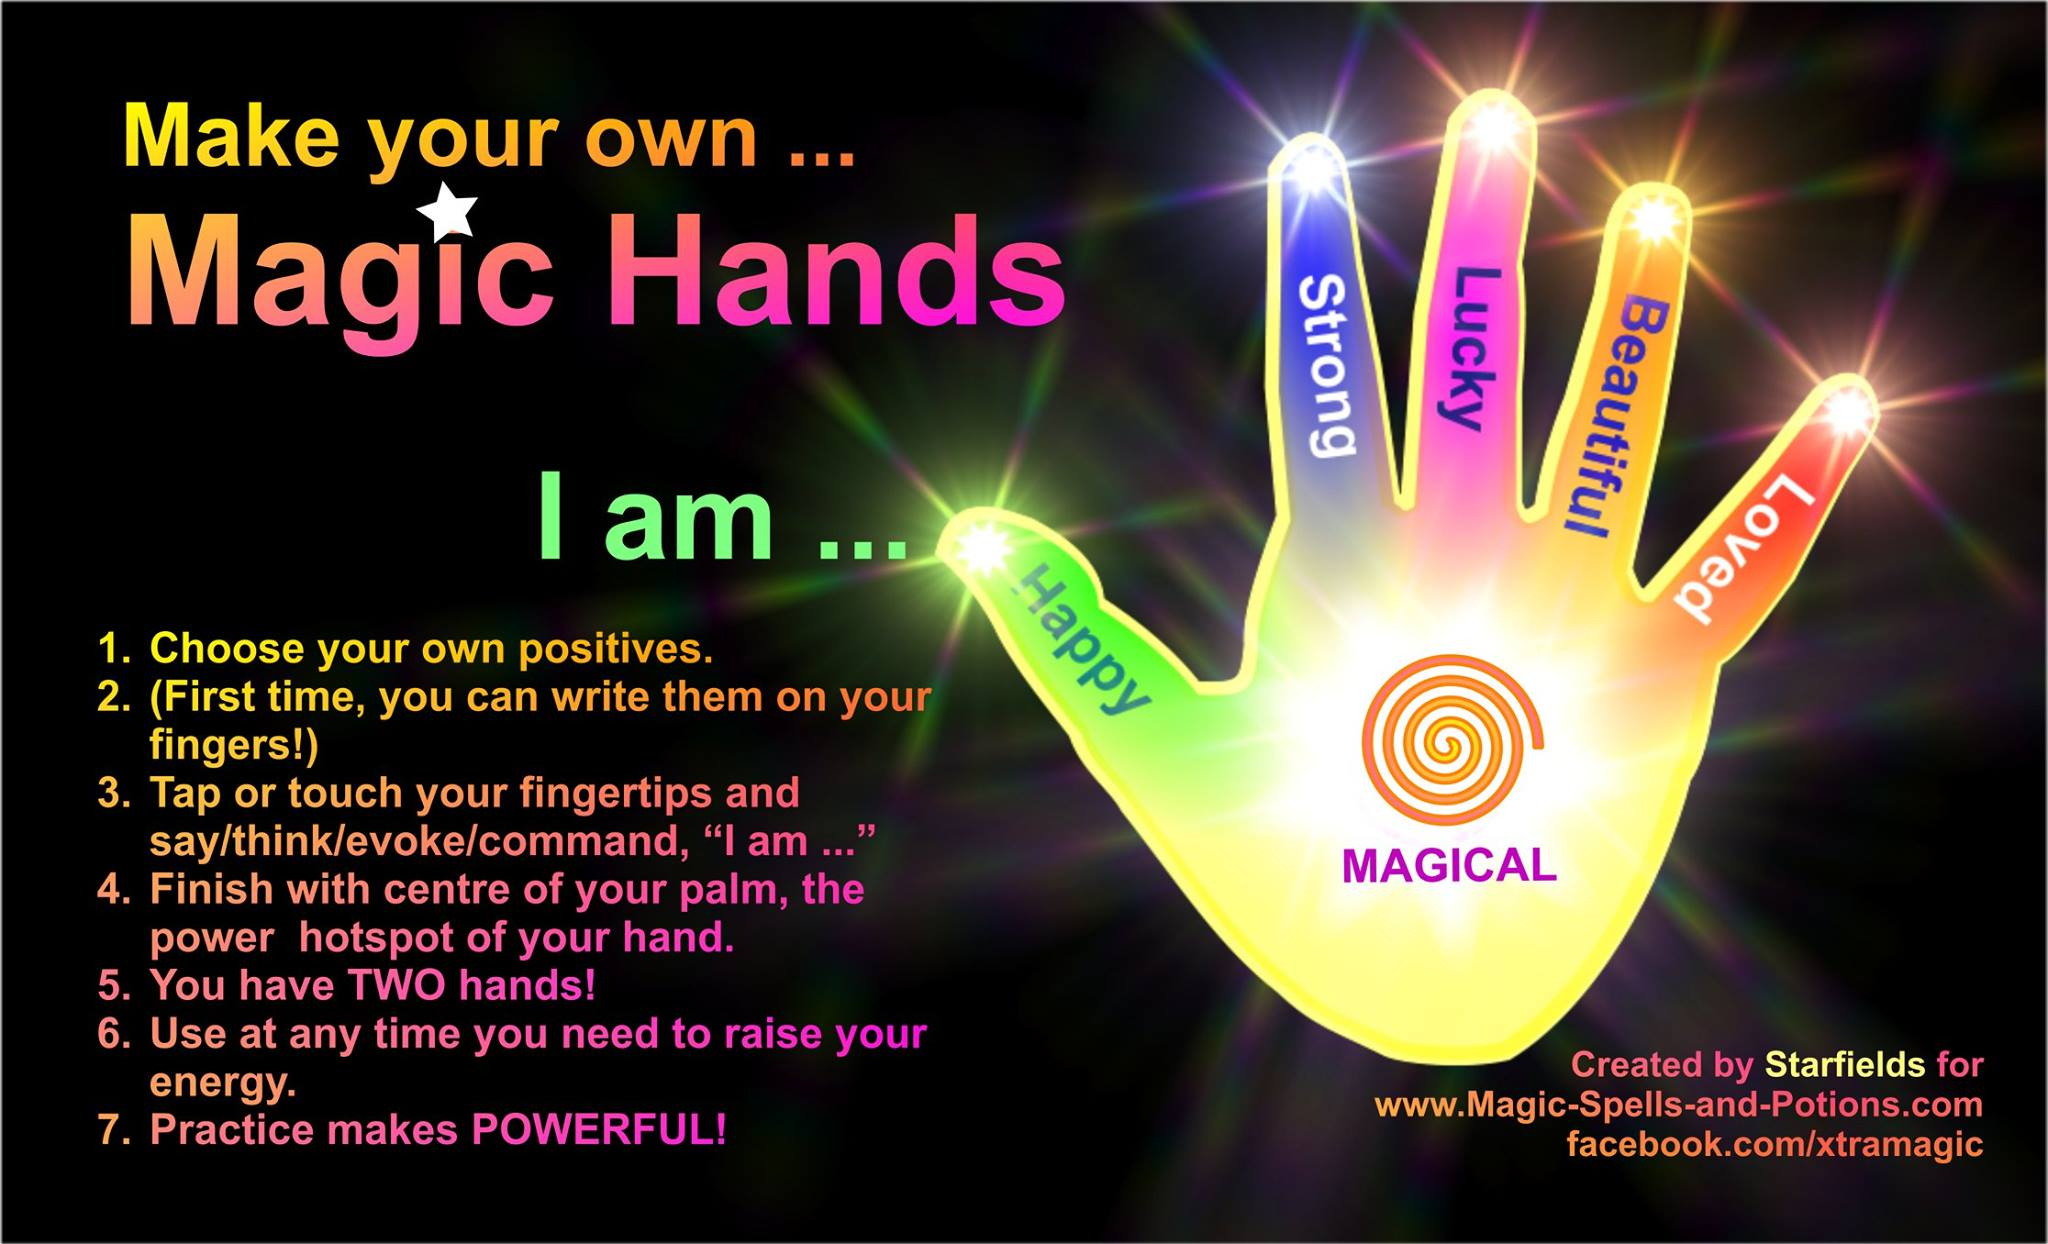 Make your own Magic hands - hands and fingers with instructions